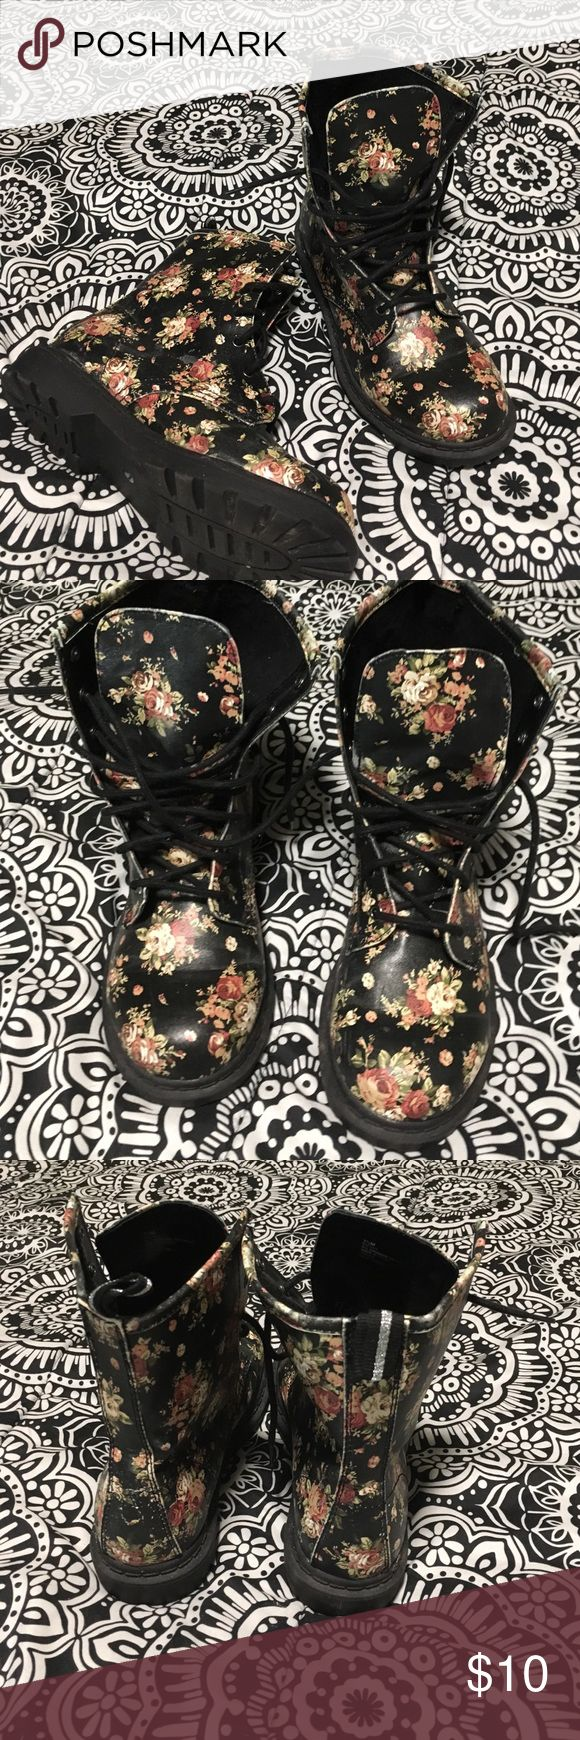 Floral combat boots Super cute I love you is I just don't wear them as much as I usually did. In amazing condition waterproof, no scuffs minimal signs of wear super cute with leggings and an oversize sweater or with just jeans❤️❤️ Arizona Jean Company Shoes Combat & Moto Boots